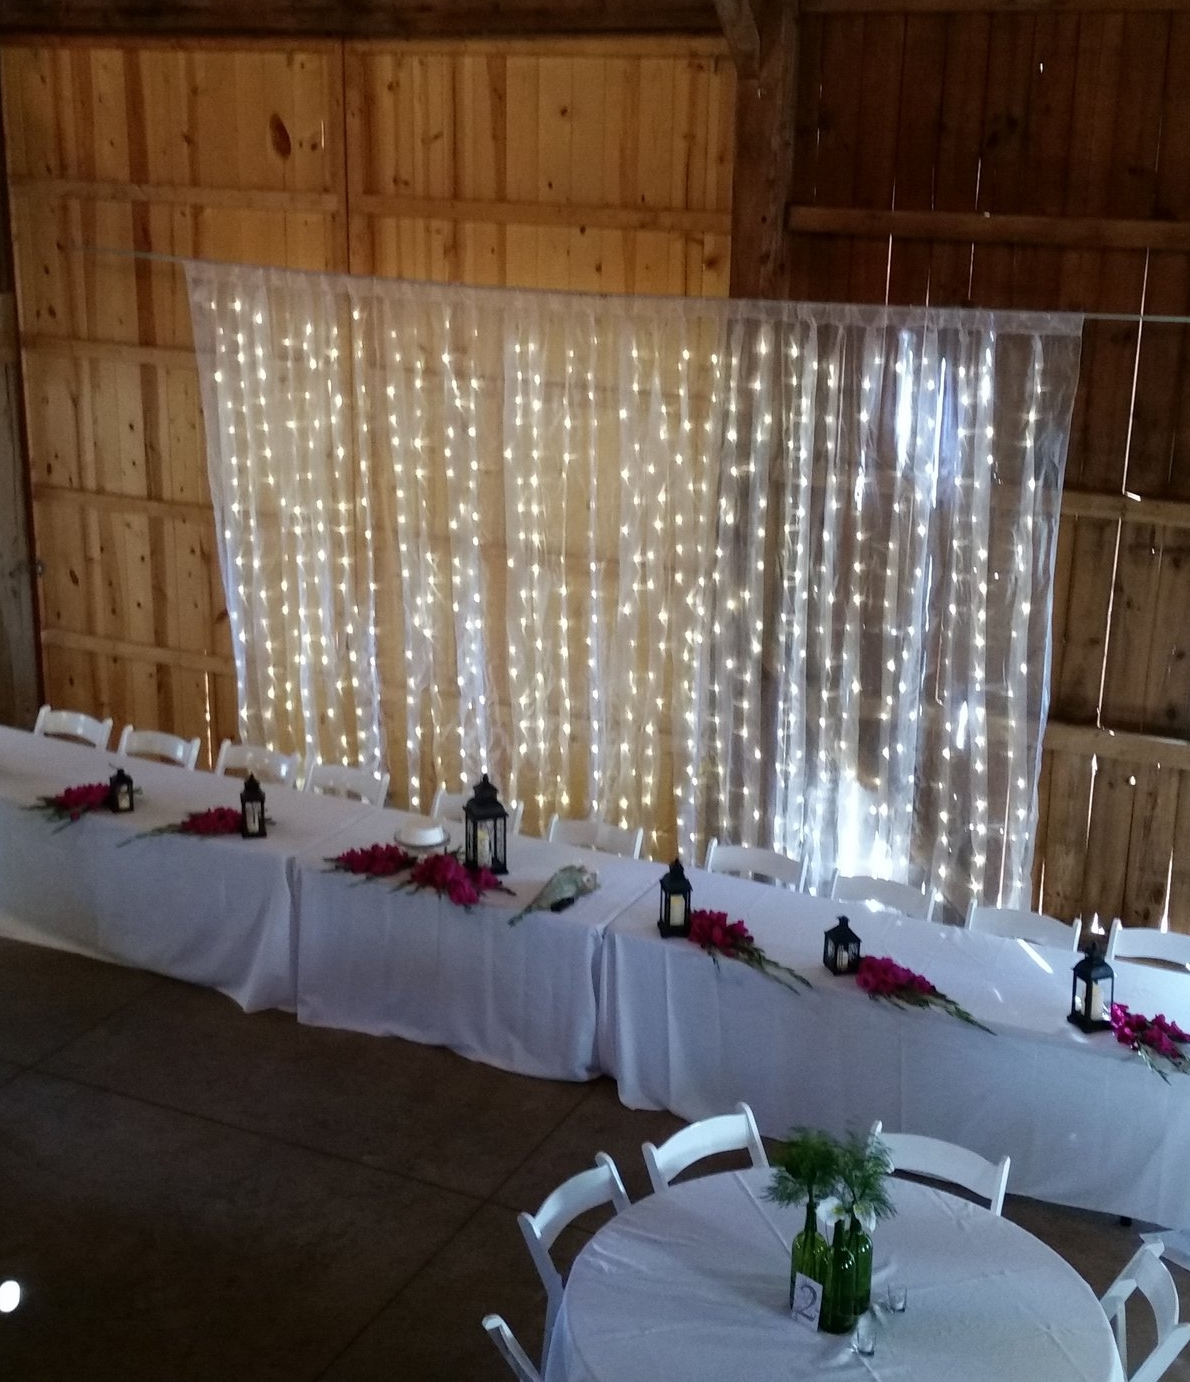 Light Curtain - Description ~ This curtain stands 10 feet tall and can adjust up to 10 feet wide. The lights can remain fixed or set to light patterns.  Complete with stand.Quantity ~ 1Price ~ $40